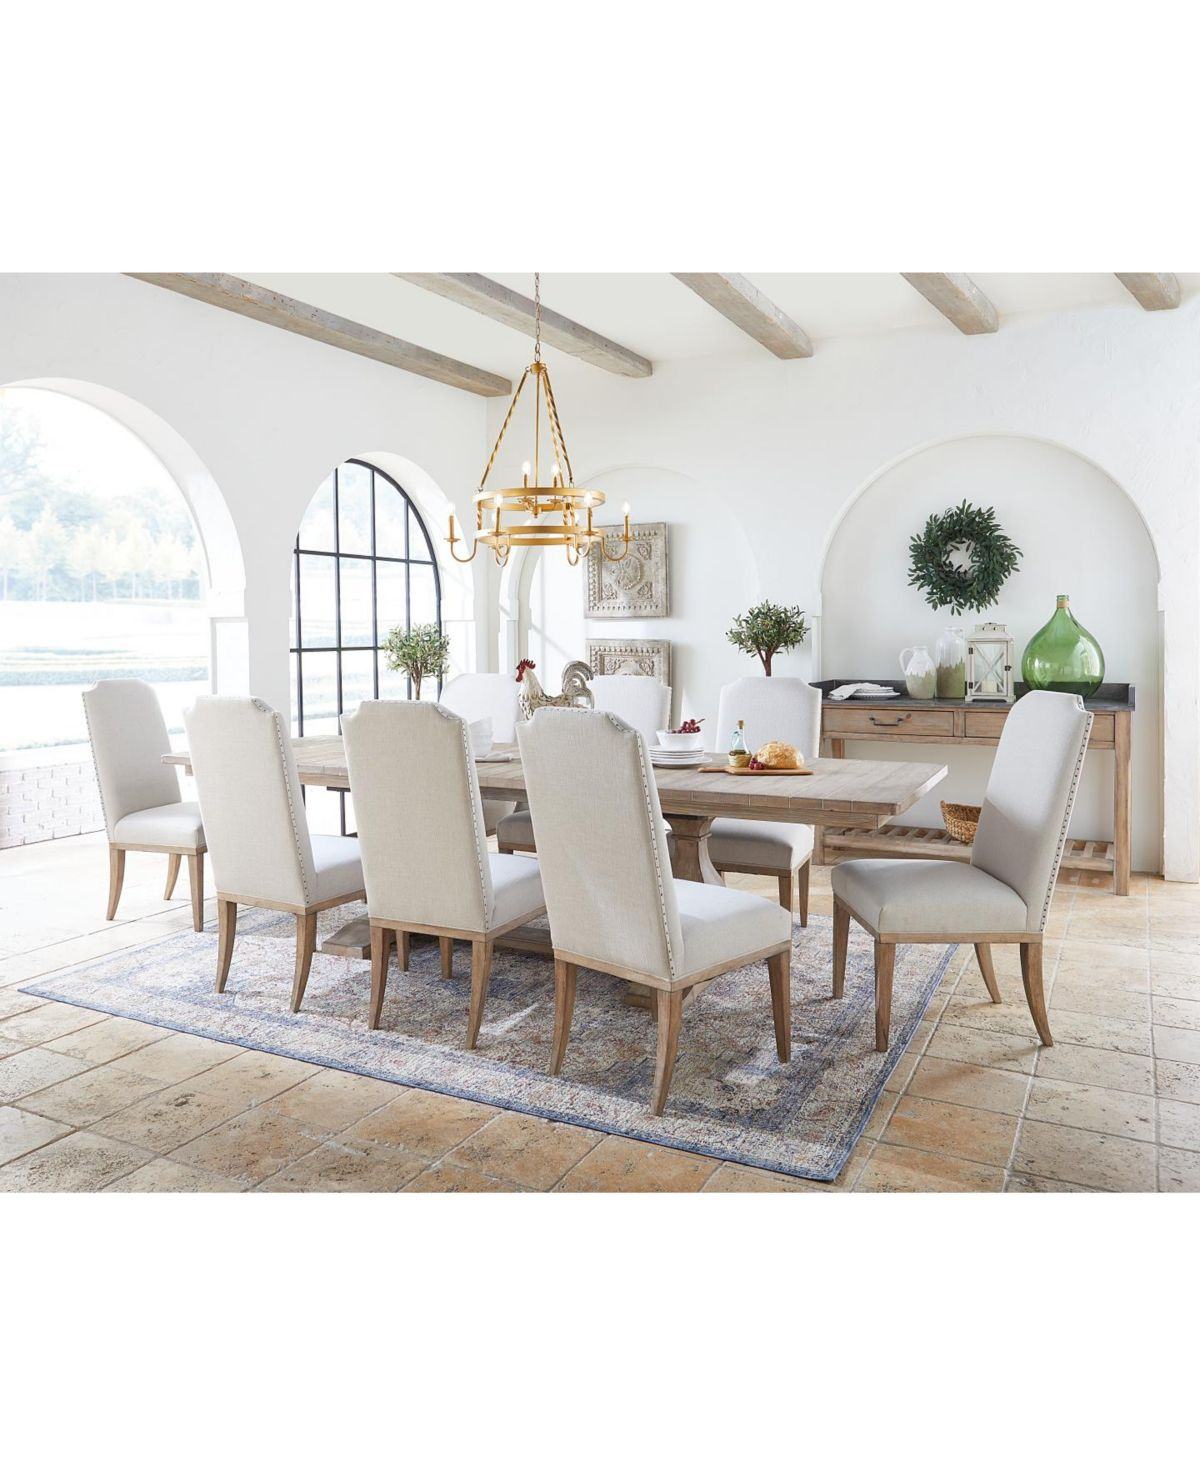 Rachael Ray Monteverdi Dining Furniture 7 Pc Set Table 4 Upholstered Side Chairs 2 Upholstered Arm Chairs Furniture Dining Furniture Side Chairs